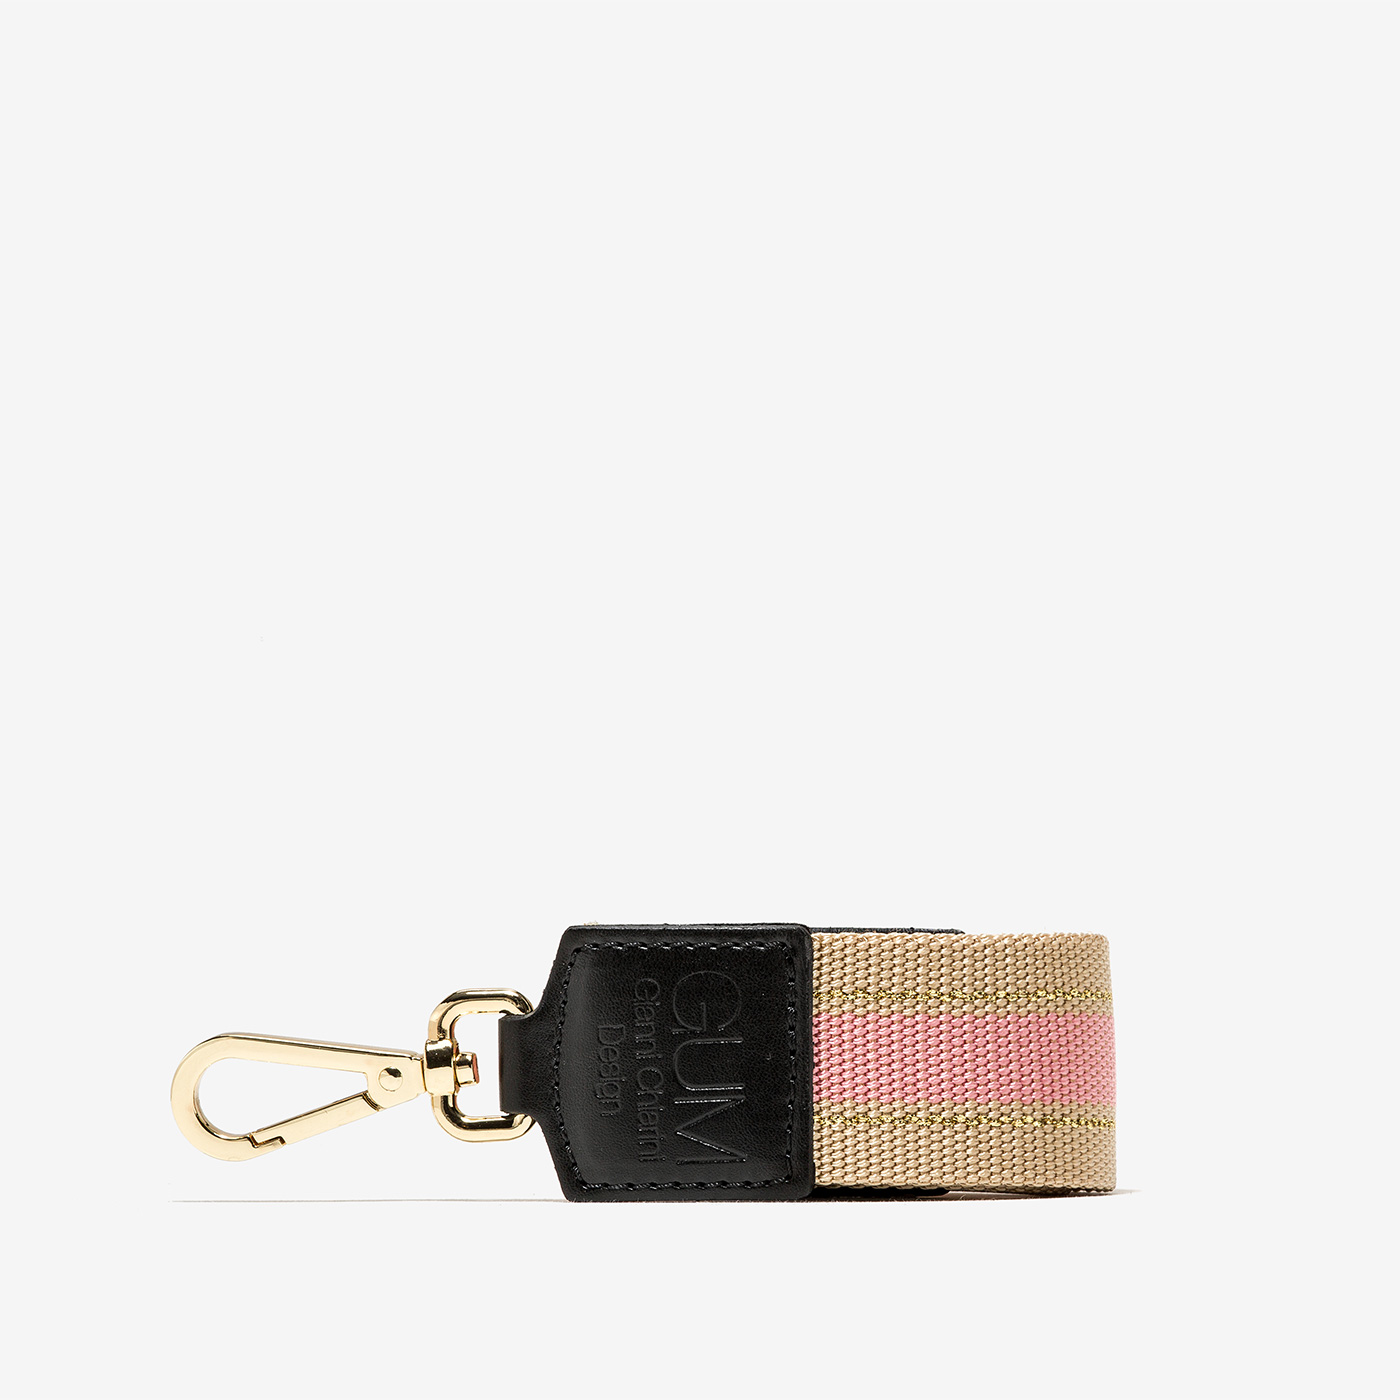 GUM: FIXED-SIZE SHOULDER STRAP WITH BAND